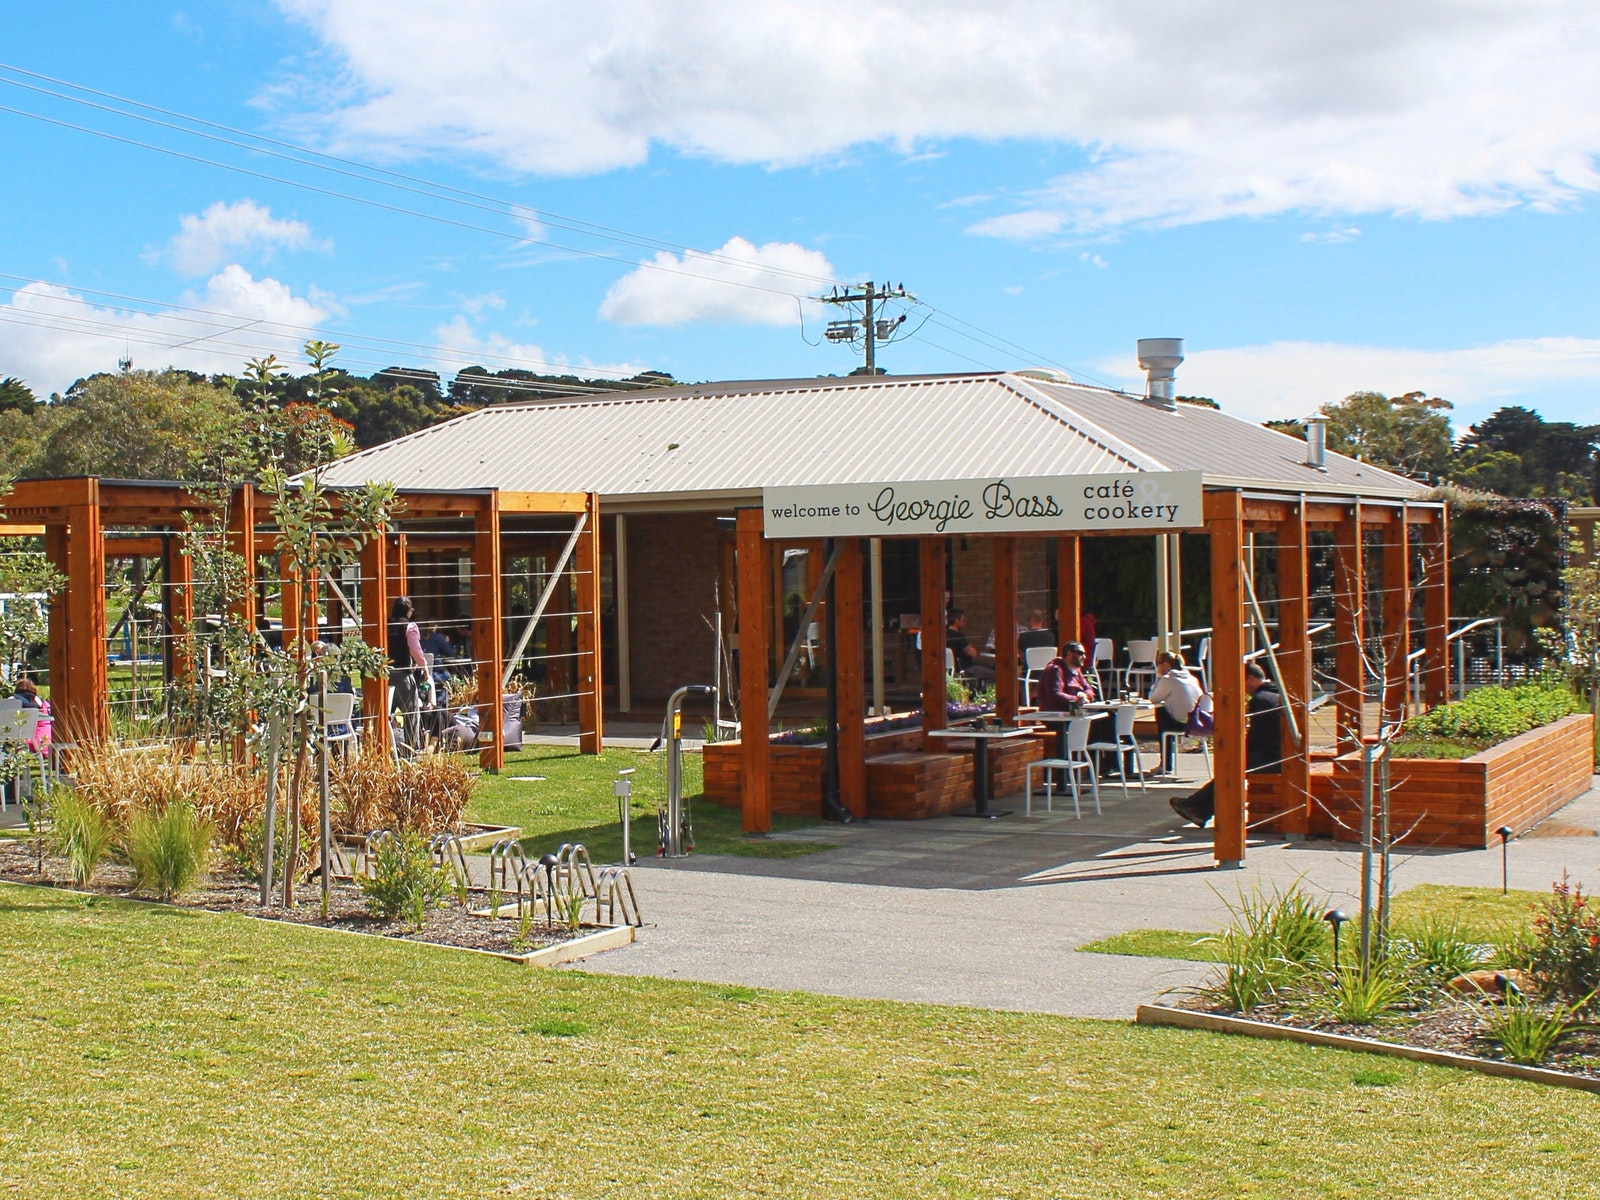 Georgie Bass Cafe & Cookery, Flinders